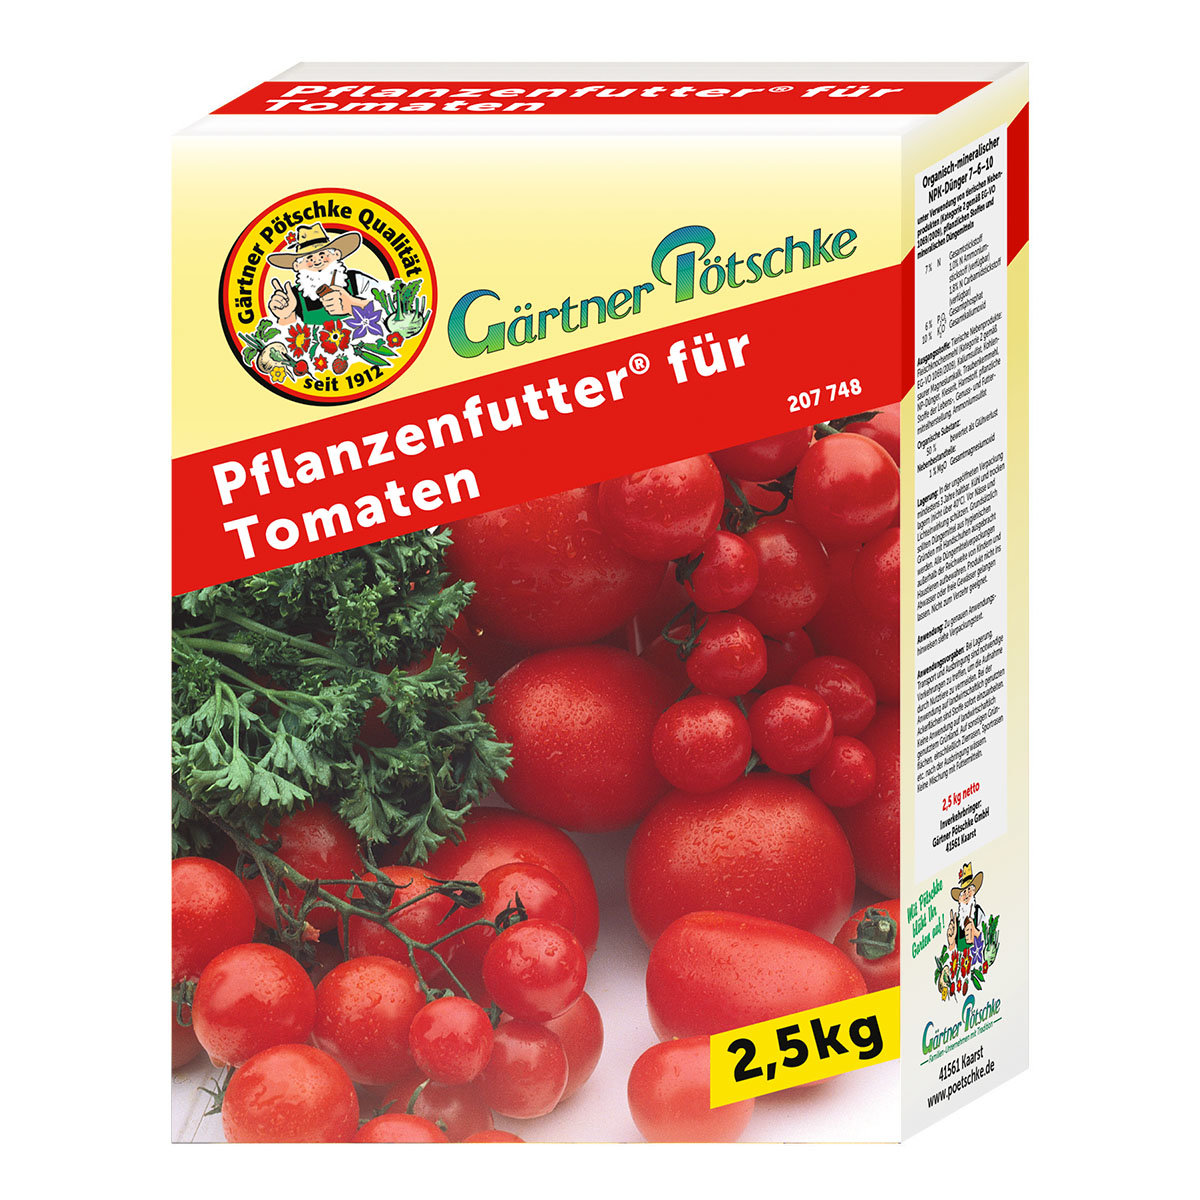 g rtner p tschke pflanzenfutter f r tomaten 2 5 kg von g rtner p tschke. Black Bedroom Furniture Sets. Home Design Ideas